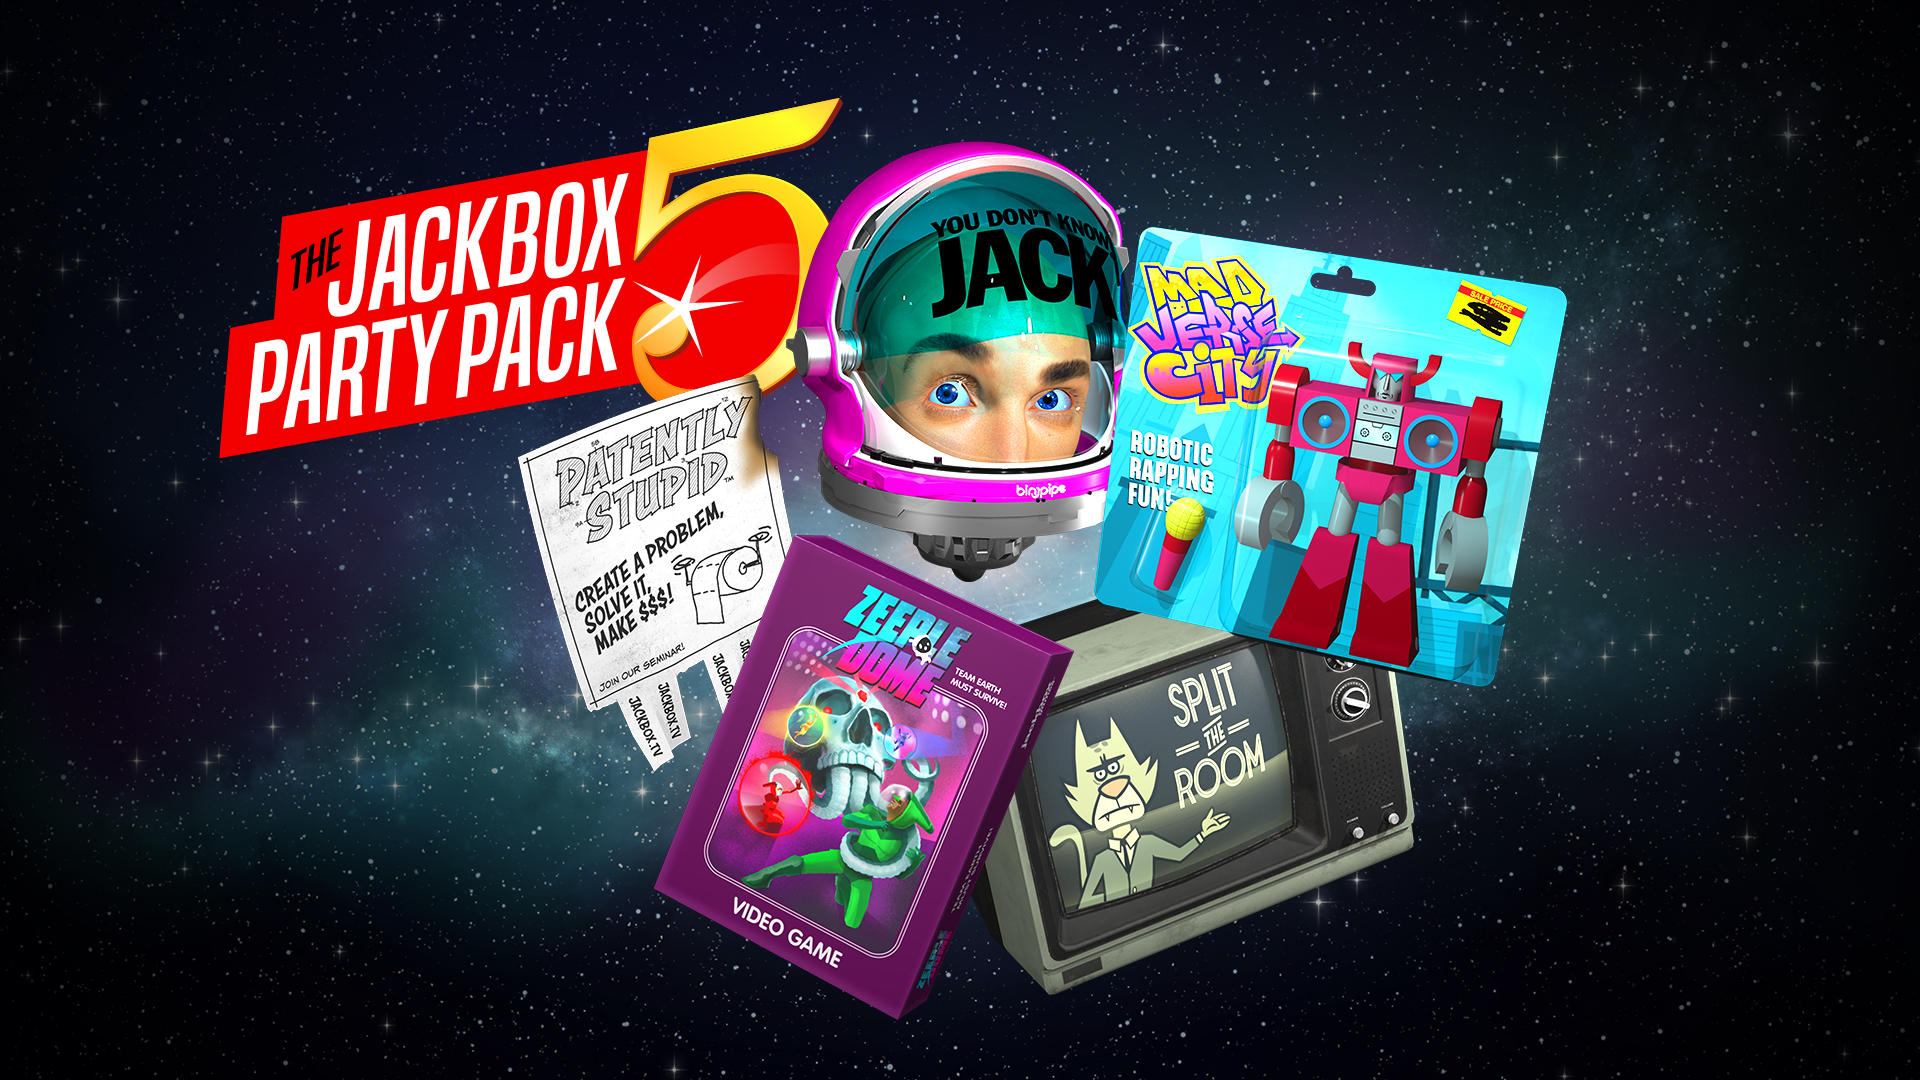 Zeeple Dome: Alien Baby Steps achievement for The Jackbox Party Pack 5 on Xbox One